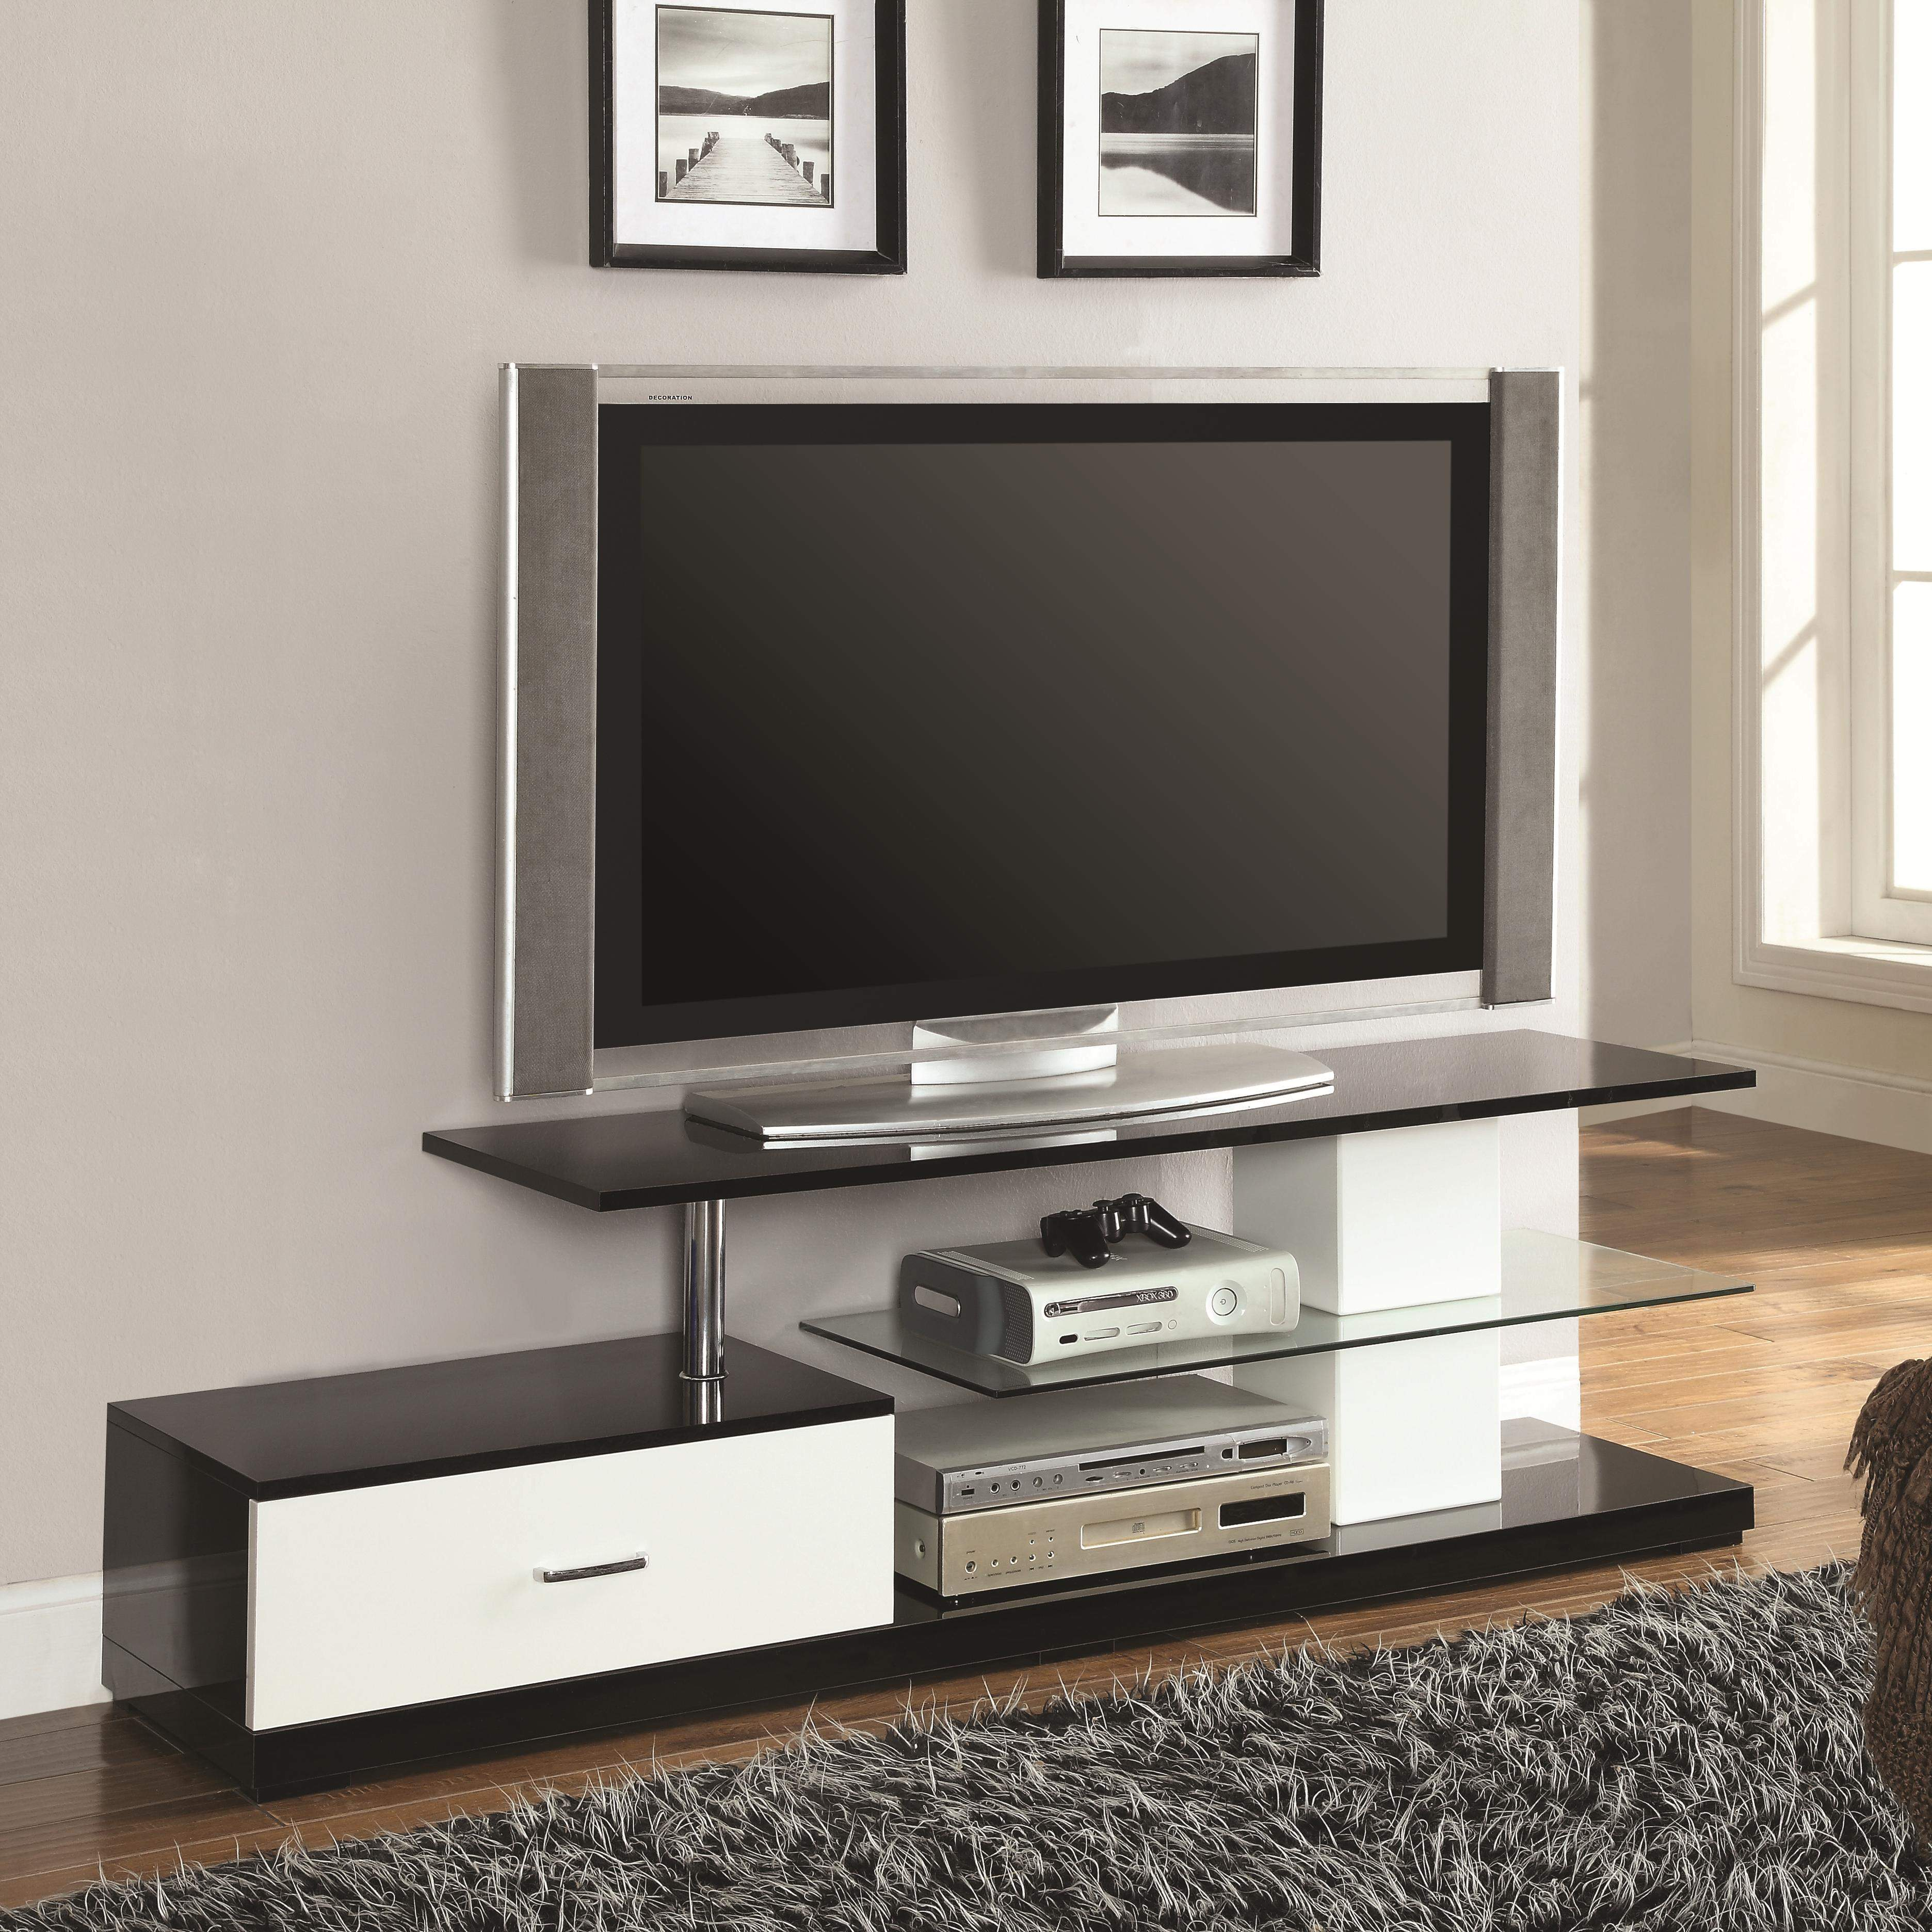 tv stands black silver and white tv stand with drawer and glass rh furniturewares com tv stands clear glass shelves flat screen tv stands glass shelves